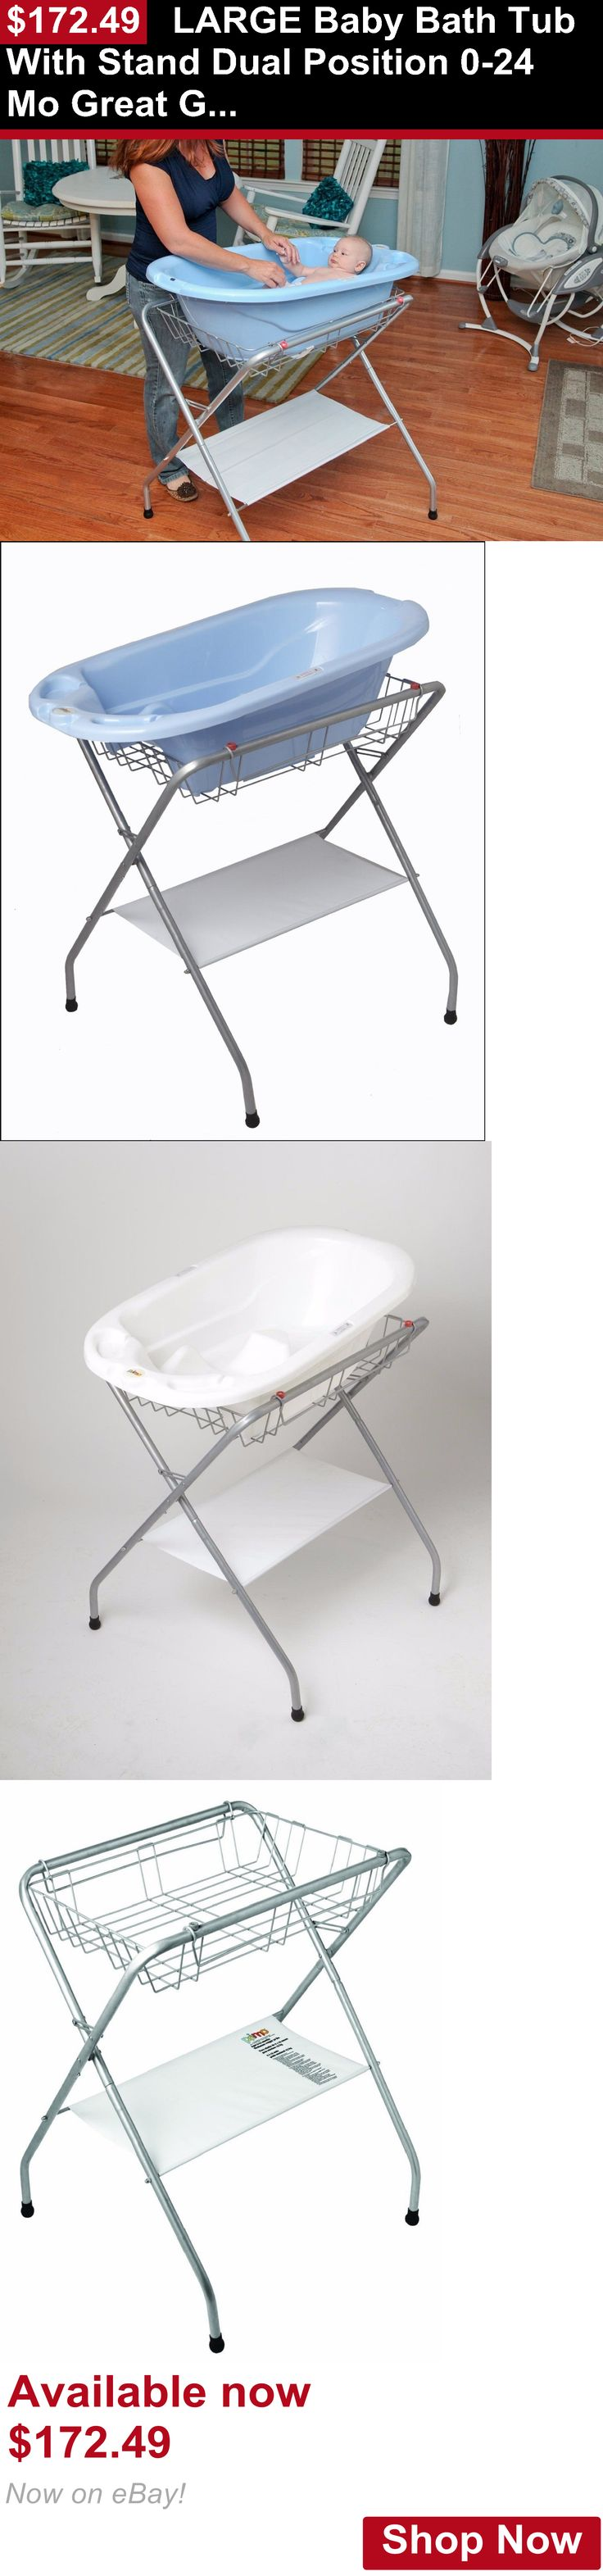 Baby Bath Tubs: Large Baby Bath Tub With Stand Dual Position 0-24 Mo Great Gift For Mom And Baby BUY IT NOW ONLY: $172.49